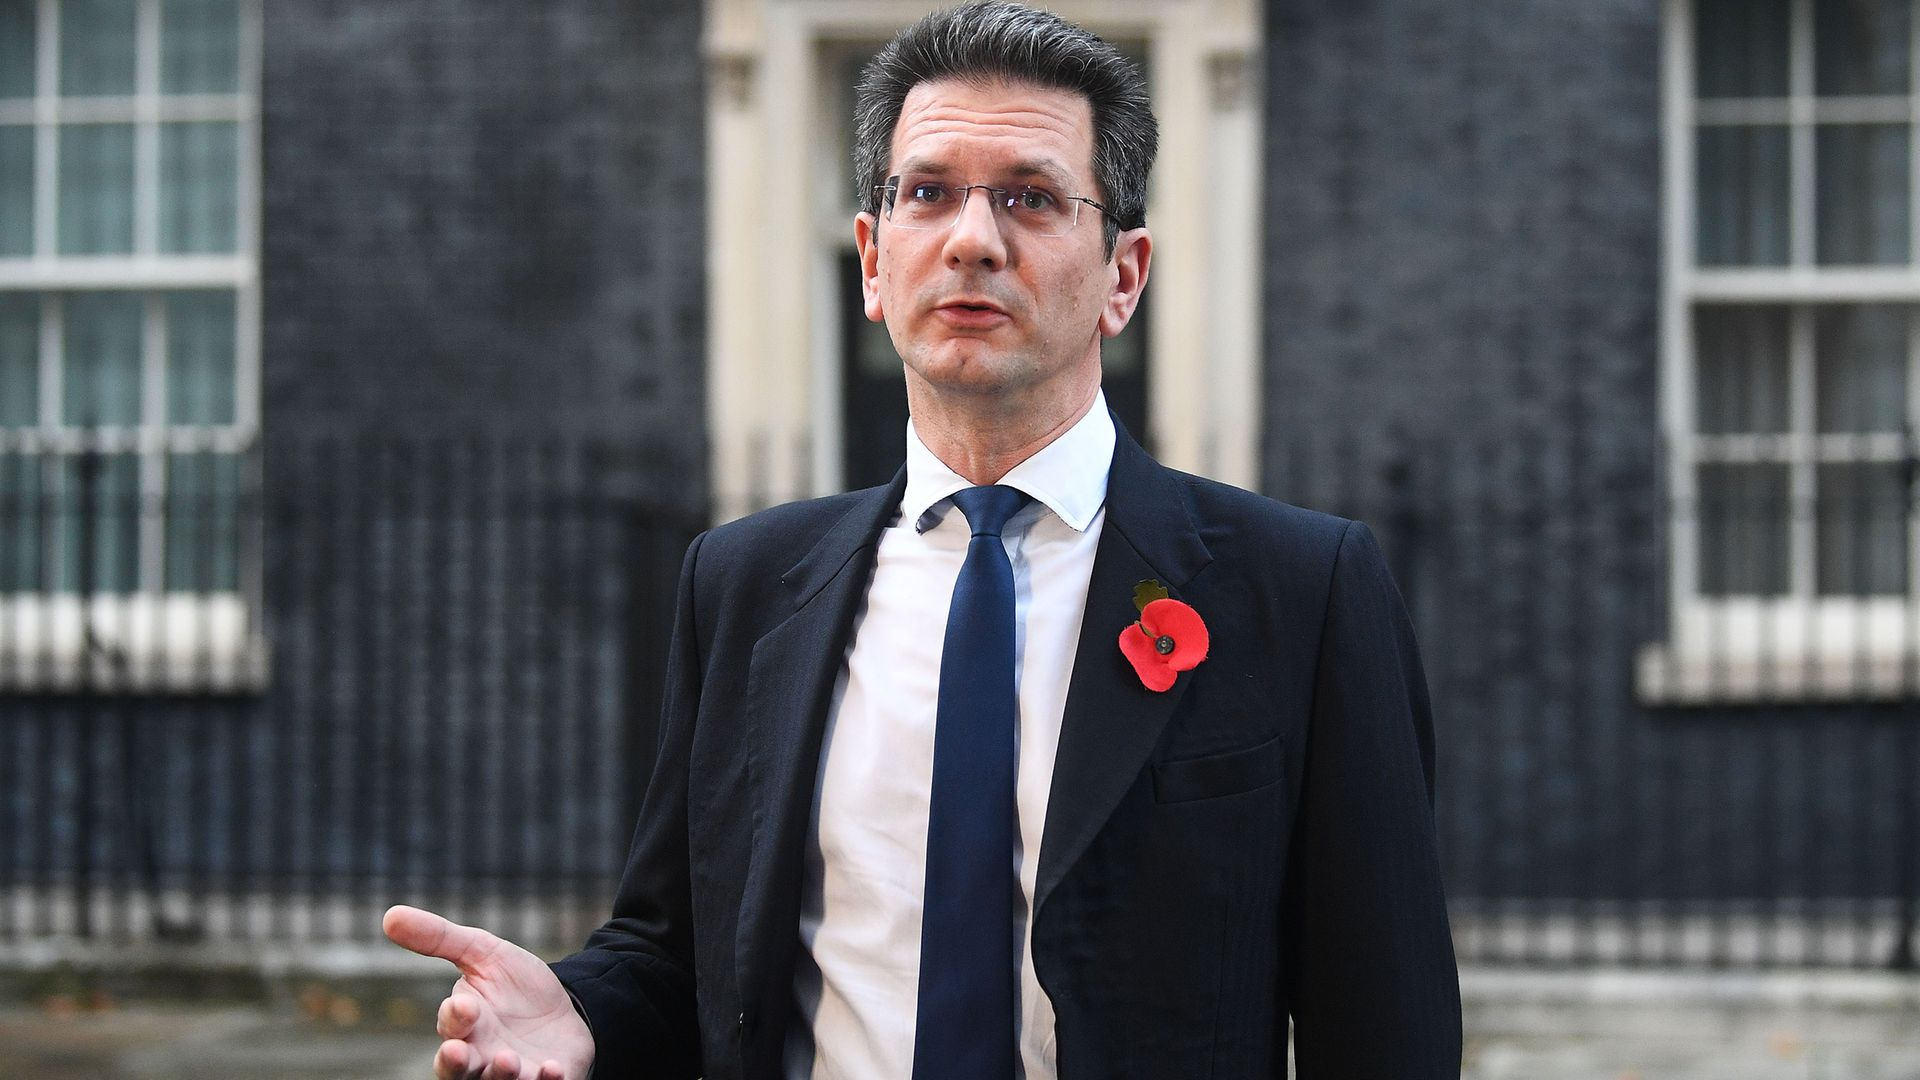 MP for Wycombe, Steve Baker, in Downing Street London, for a Cabinet meeting - Credit: PA